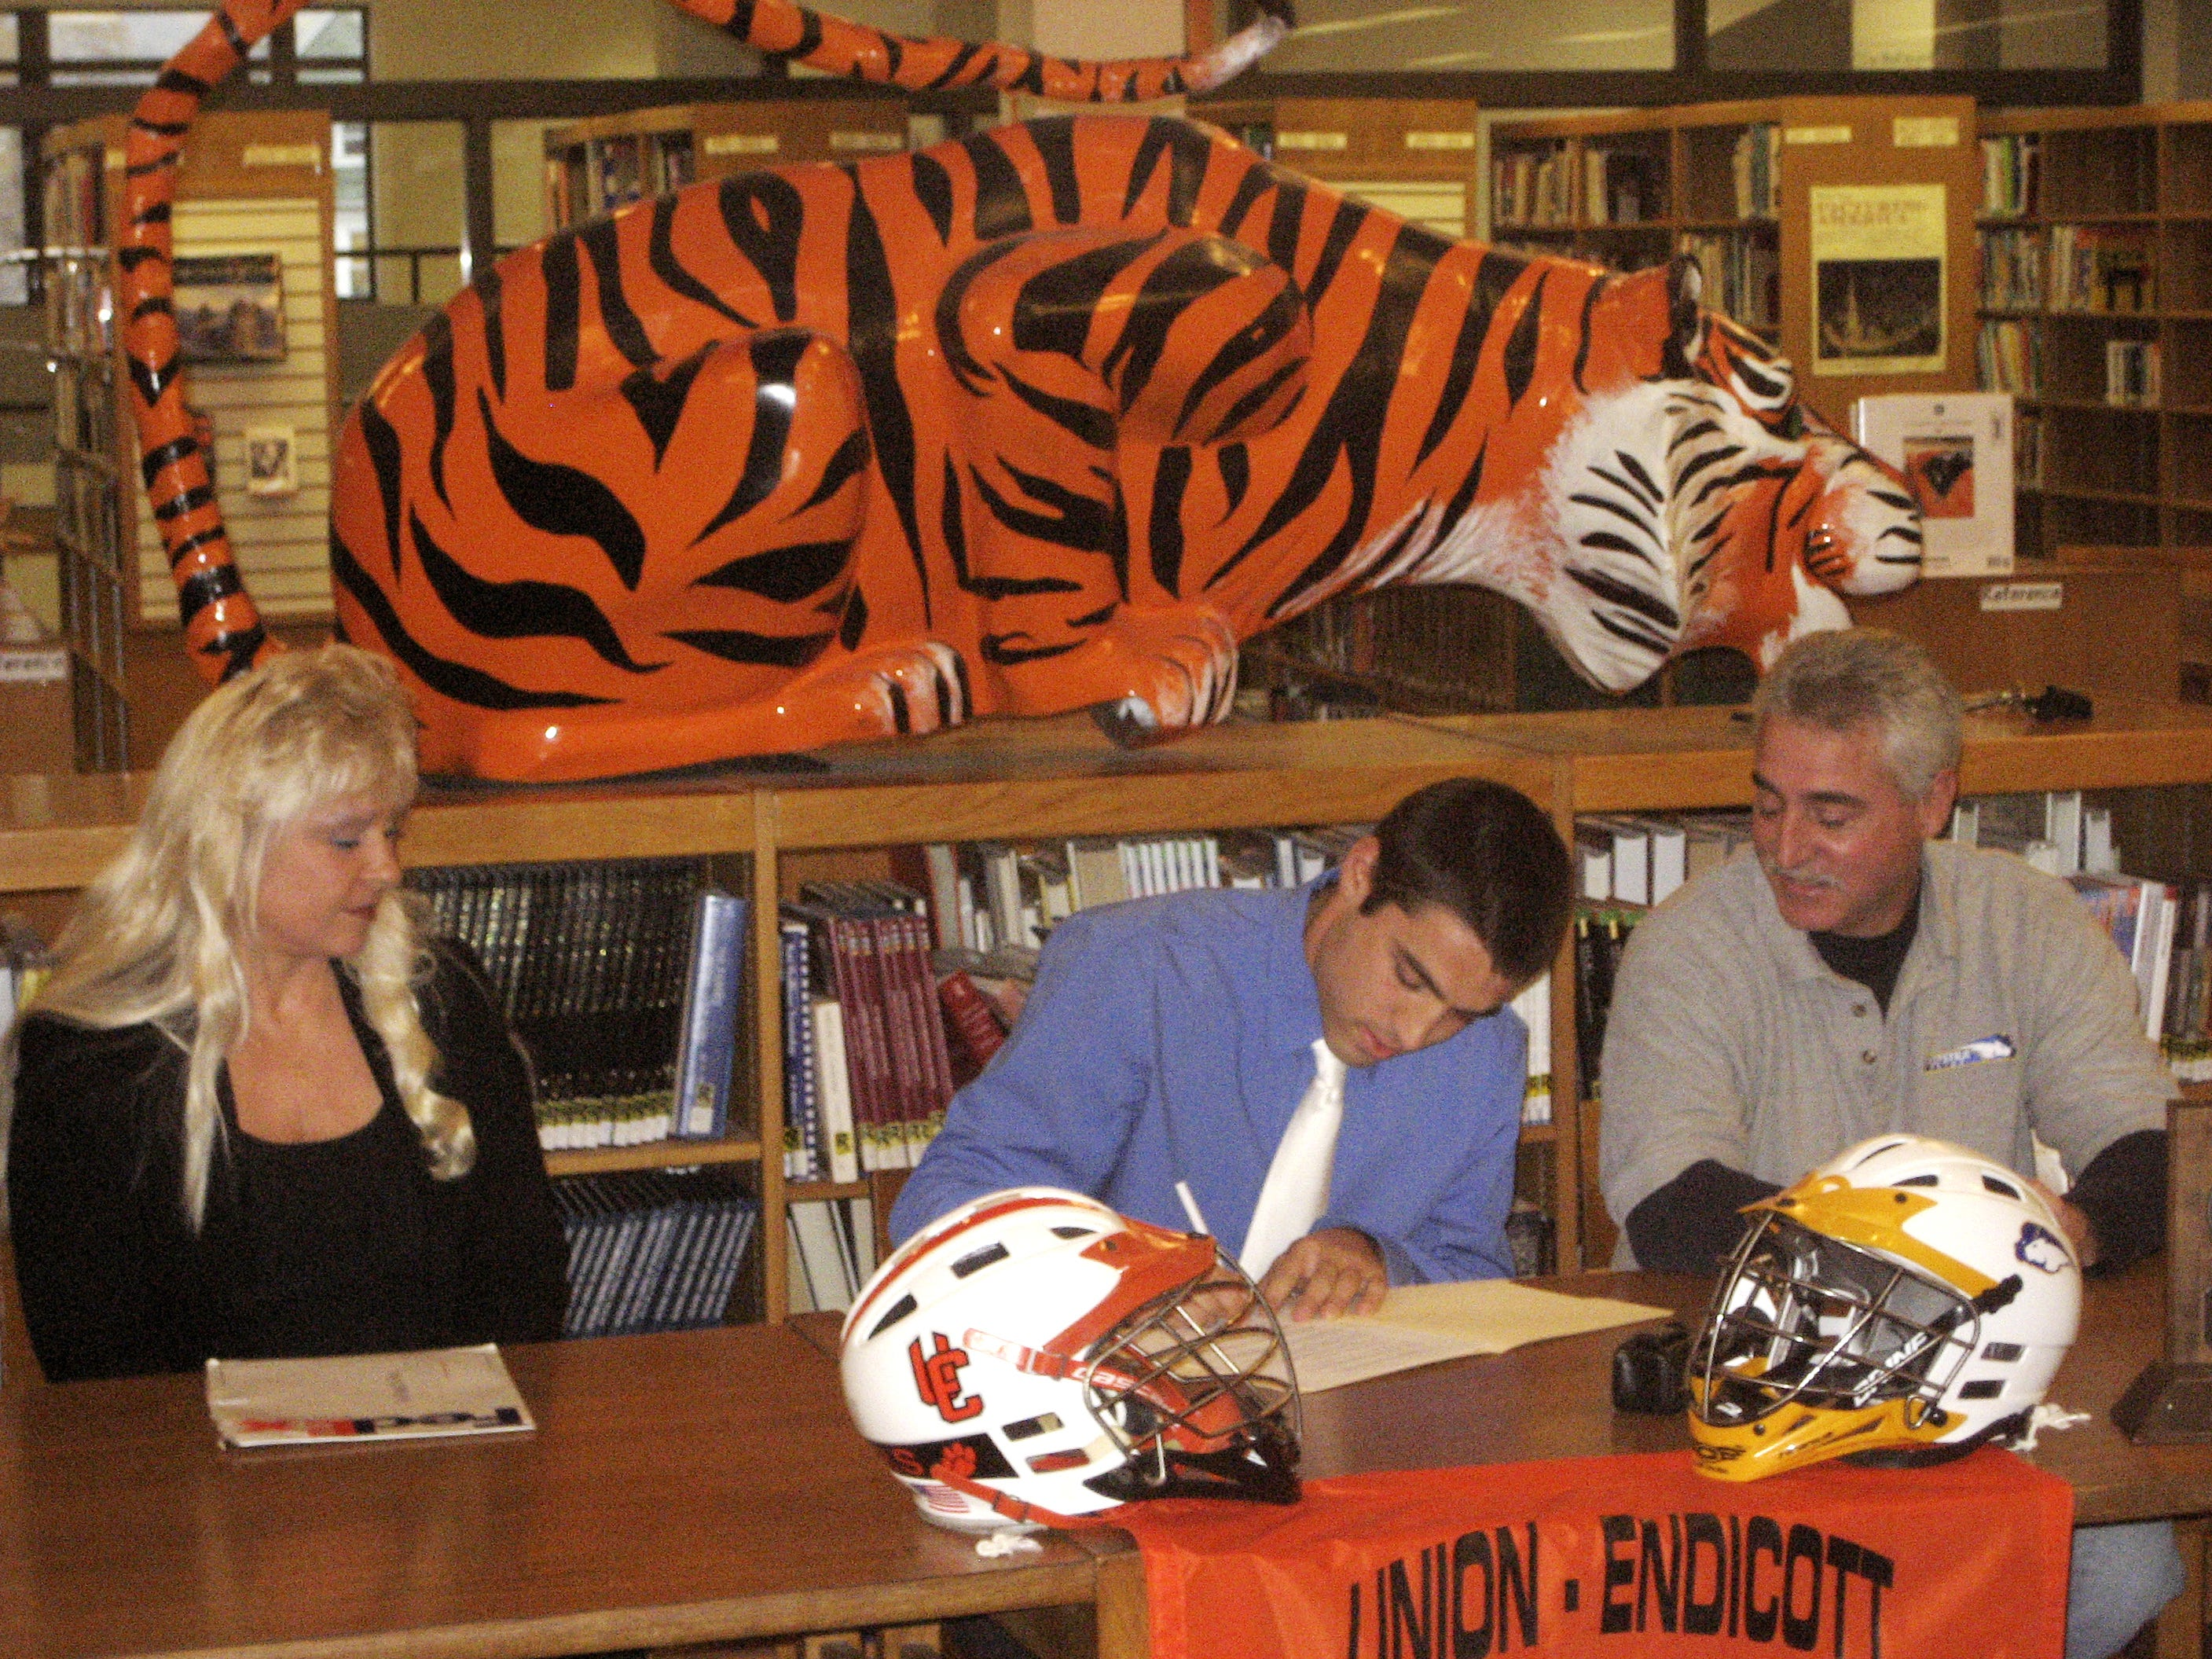 2007: Union-Endicott senior Daniel Pezzolla signs National Letter of Intent to play lacrosse at Division I Hofstra University while his parents Denise and Greg Pezzolla look on.